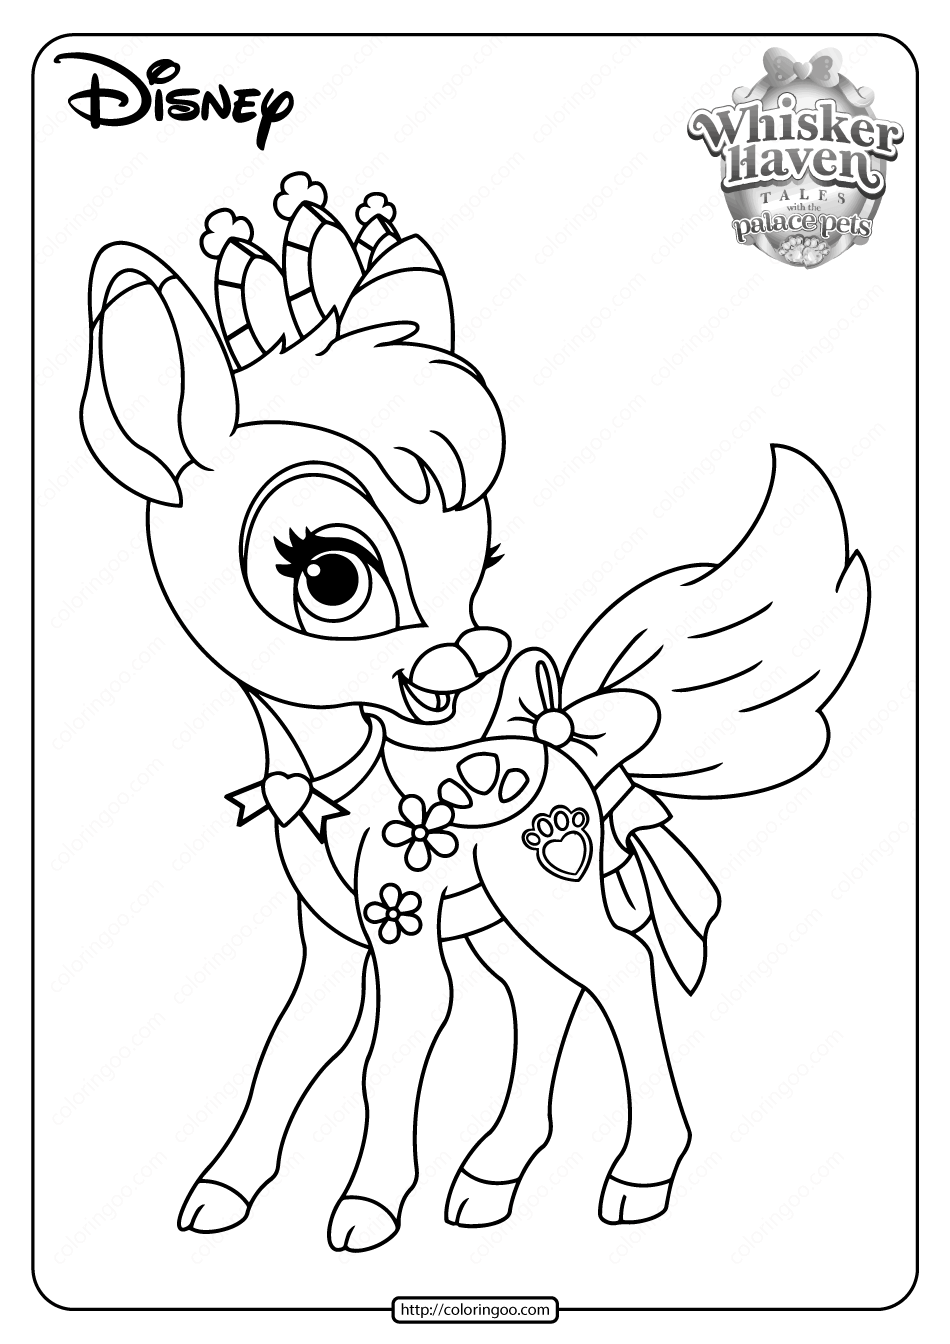 Printable Palace Pets Gleam Pdf Coloring Pages In 2020 Princess Coloring Pages Disney Princess Coloring Pages Rapunzel Coloring Pages